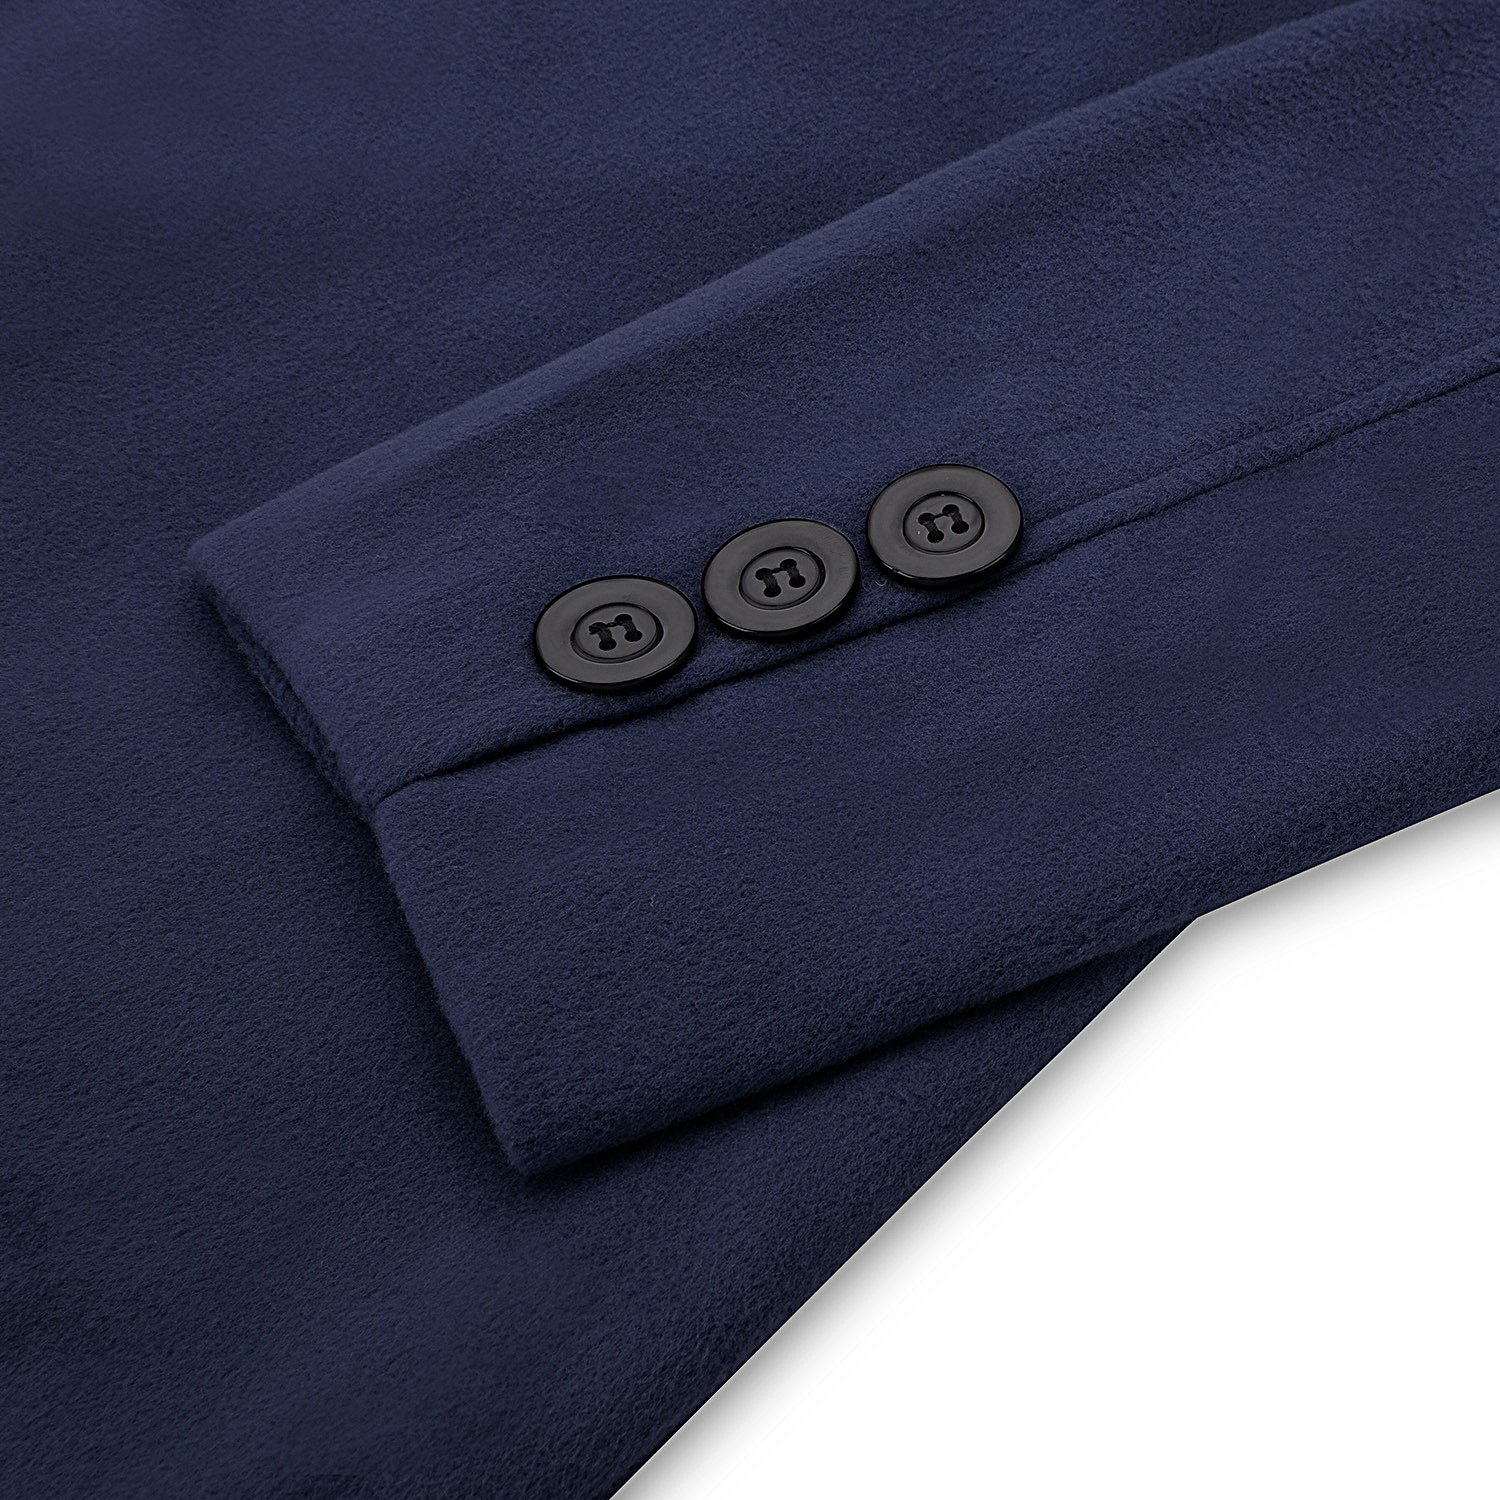 Hasuit Men's Single Breasted Notched Lapel Coat by Hasuit (Image #5)